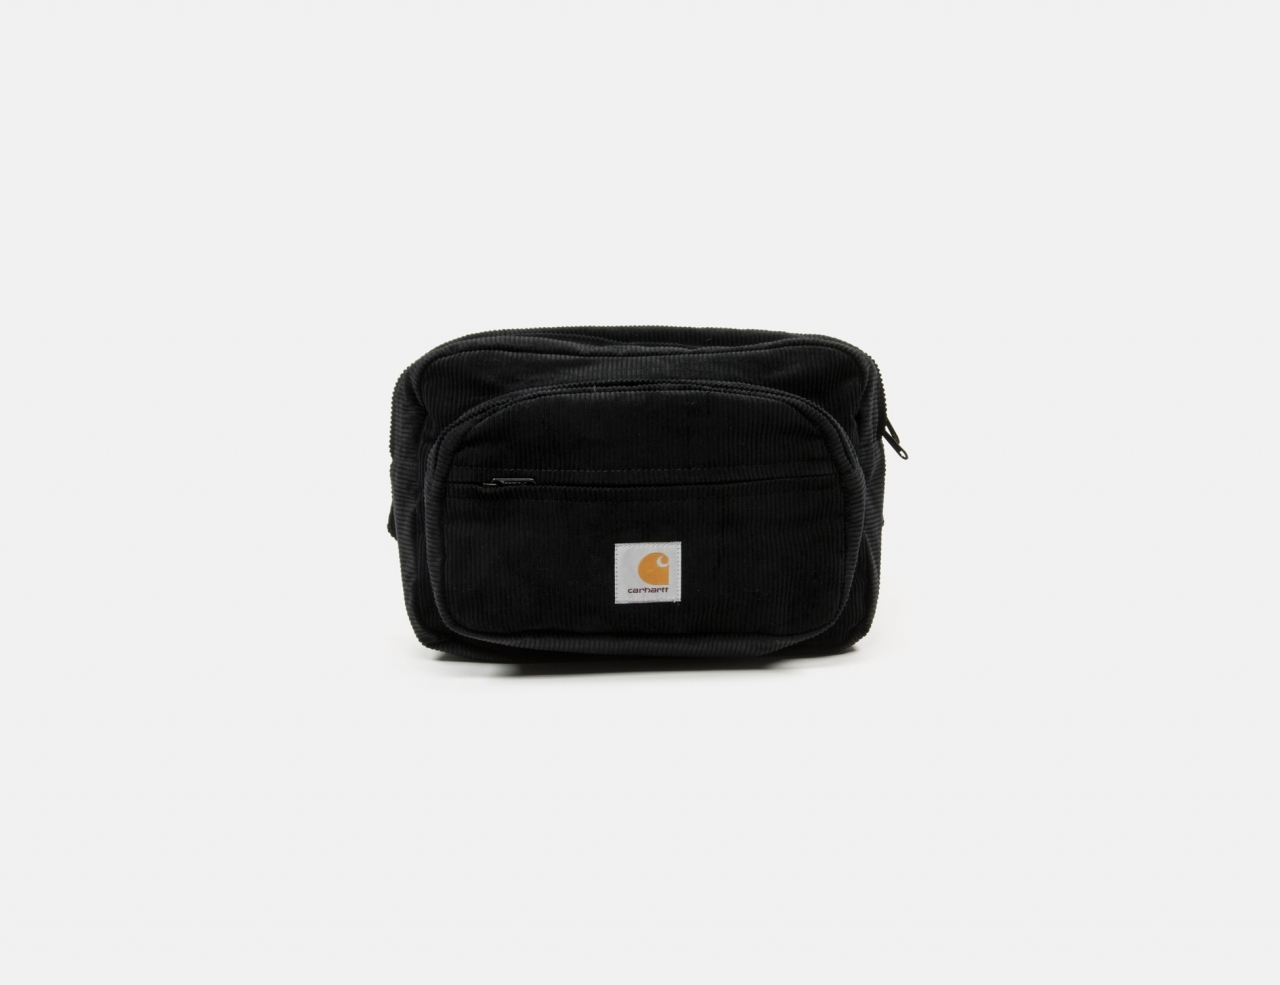 Carhartt WIP Cord Hip Bag - Black